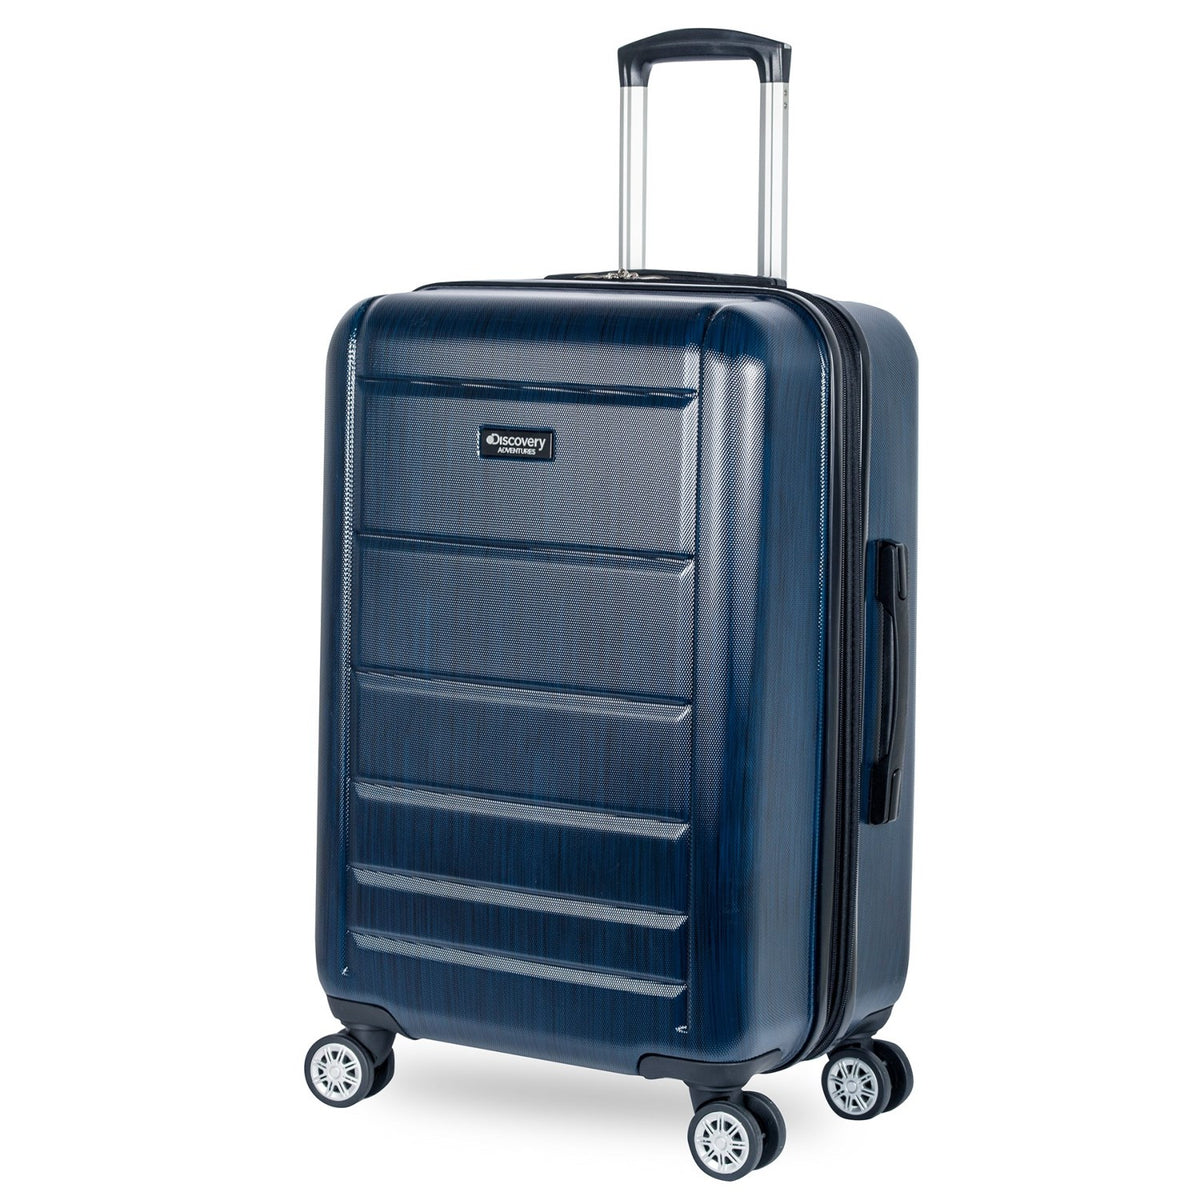 4 Wheel Spinner Luggage